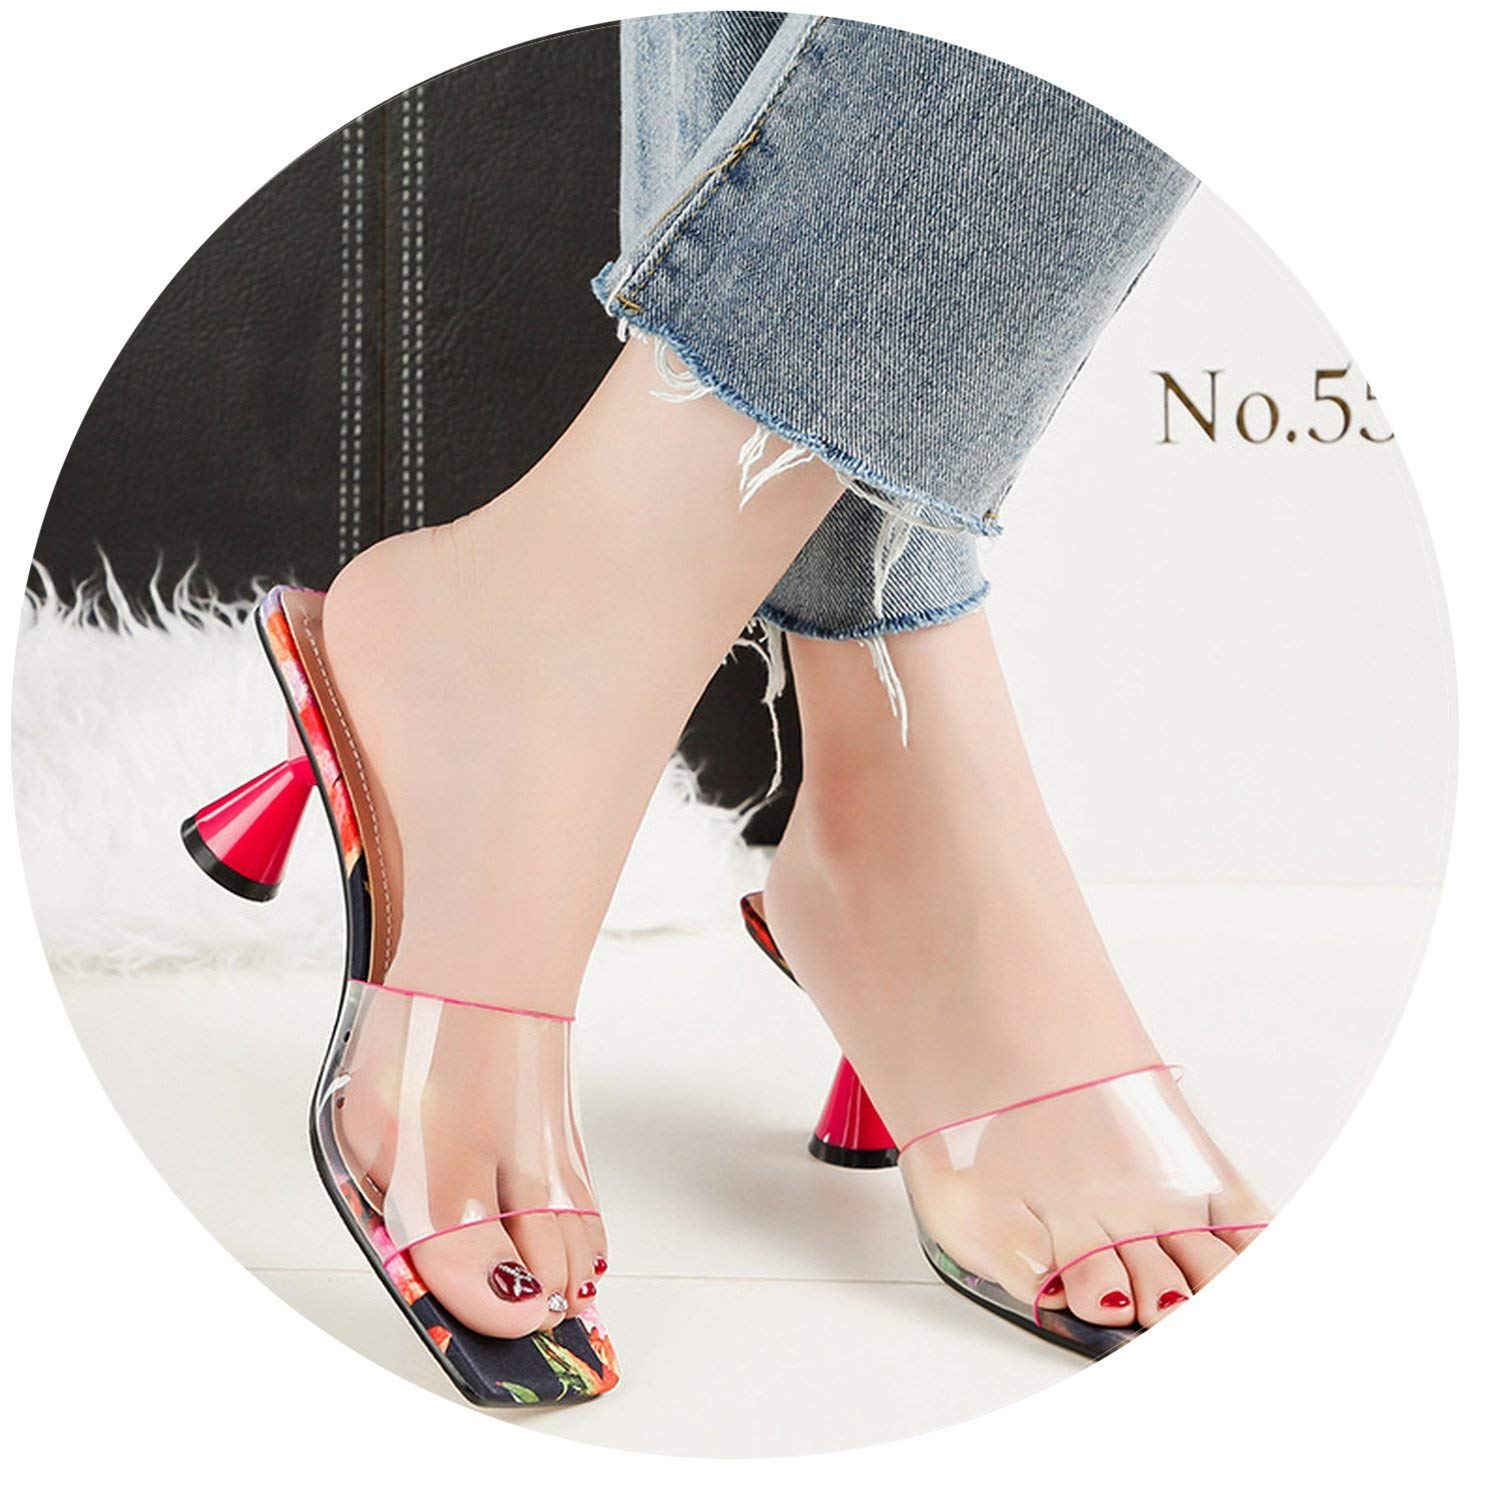 72df58dcdf9 Get Quotations · Shiny-Fashion-Dream-mules-shoes Women Crystal 6cm High  Heels Mules Shales